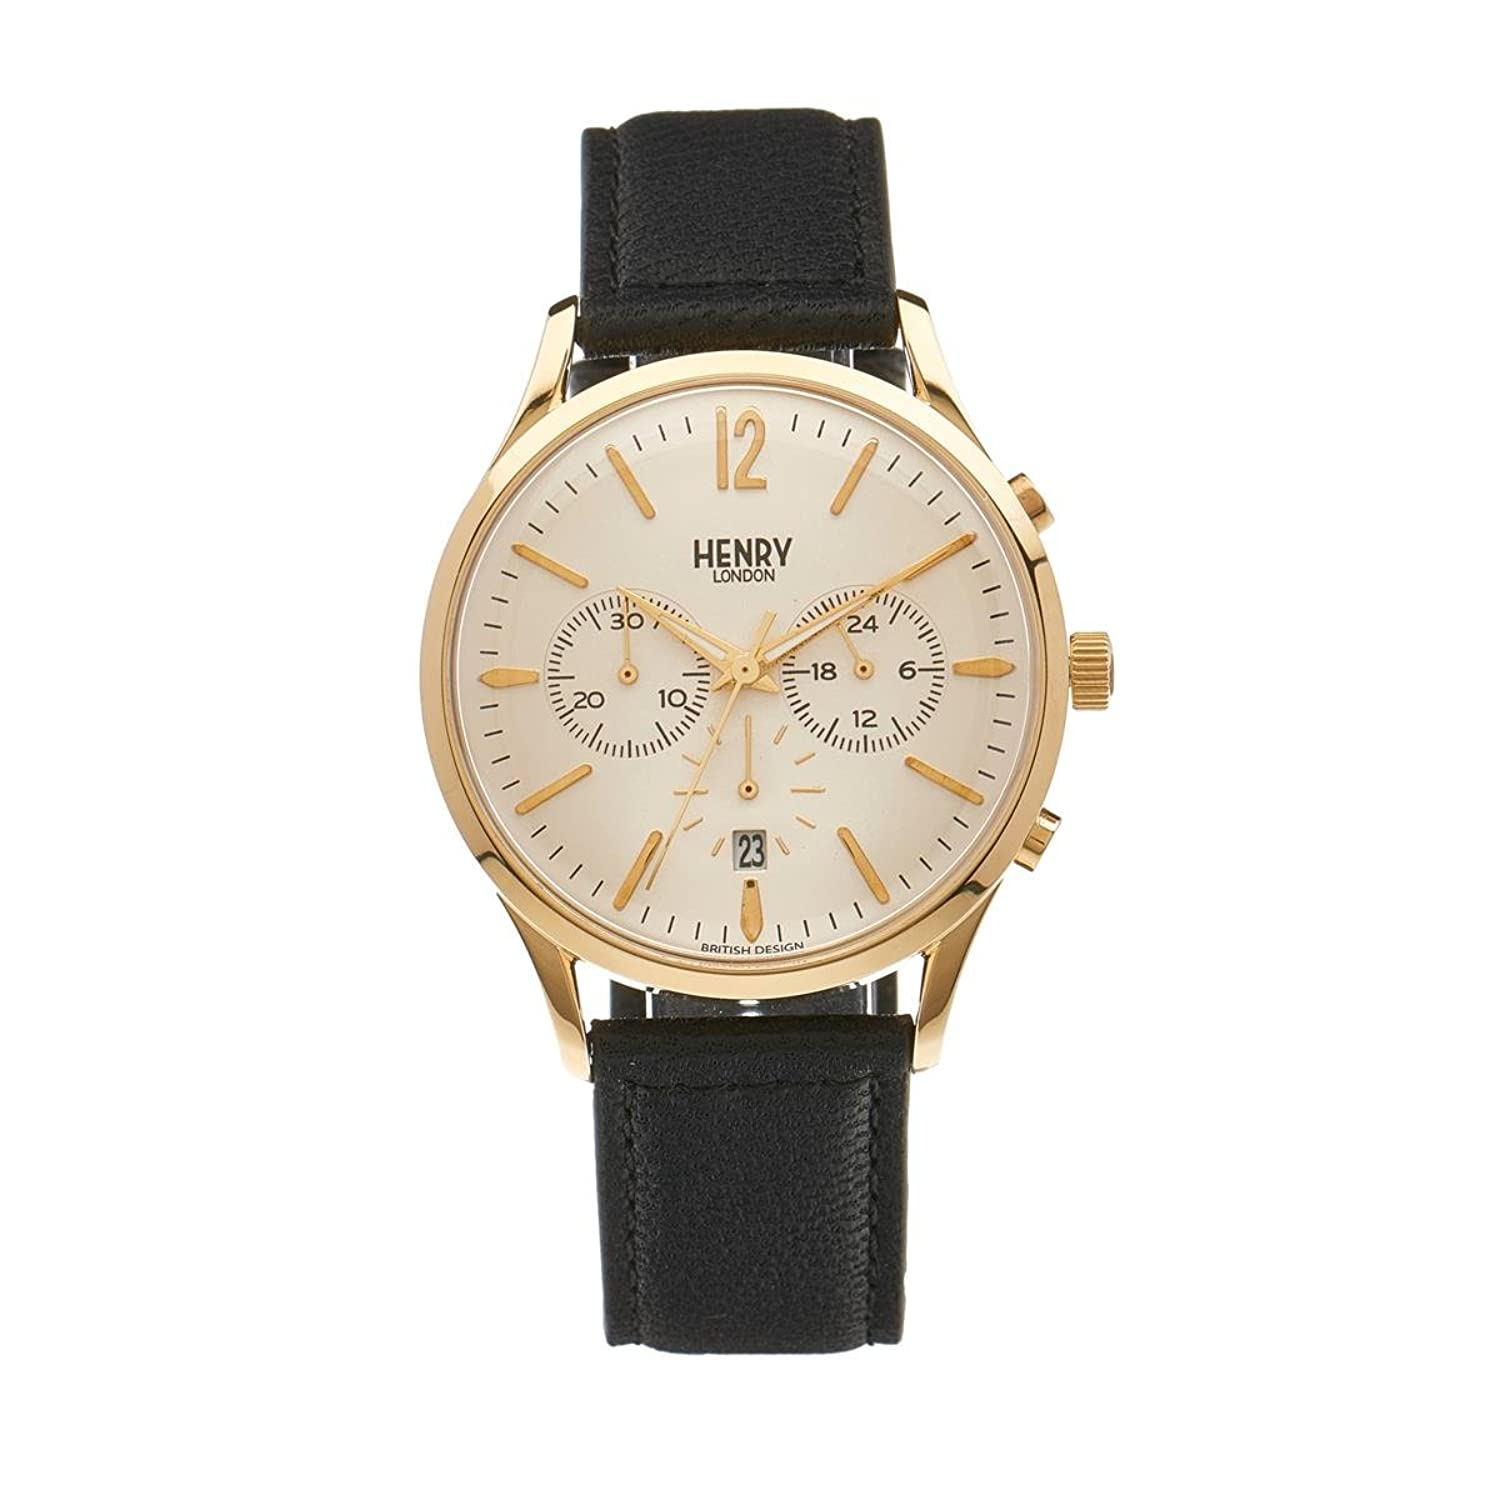 Henry London Unisex-Armbanduhr Westminster Chronograph Quarz Leder HL41-CS-0018